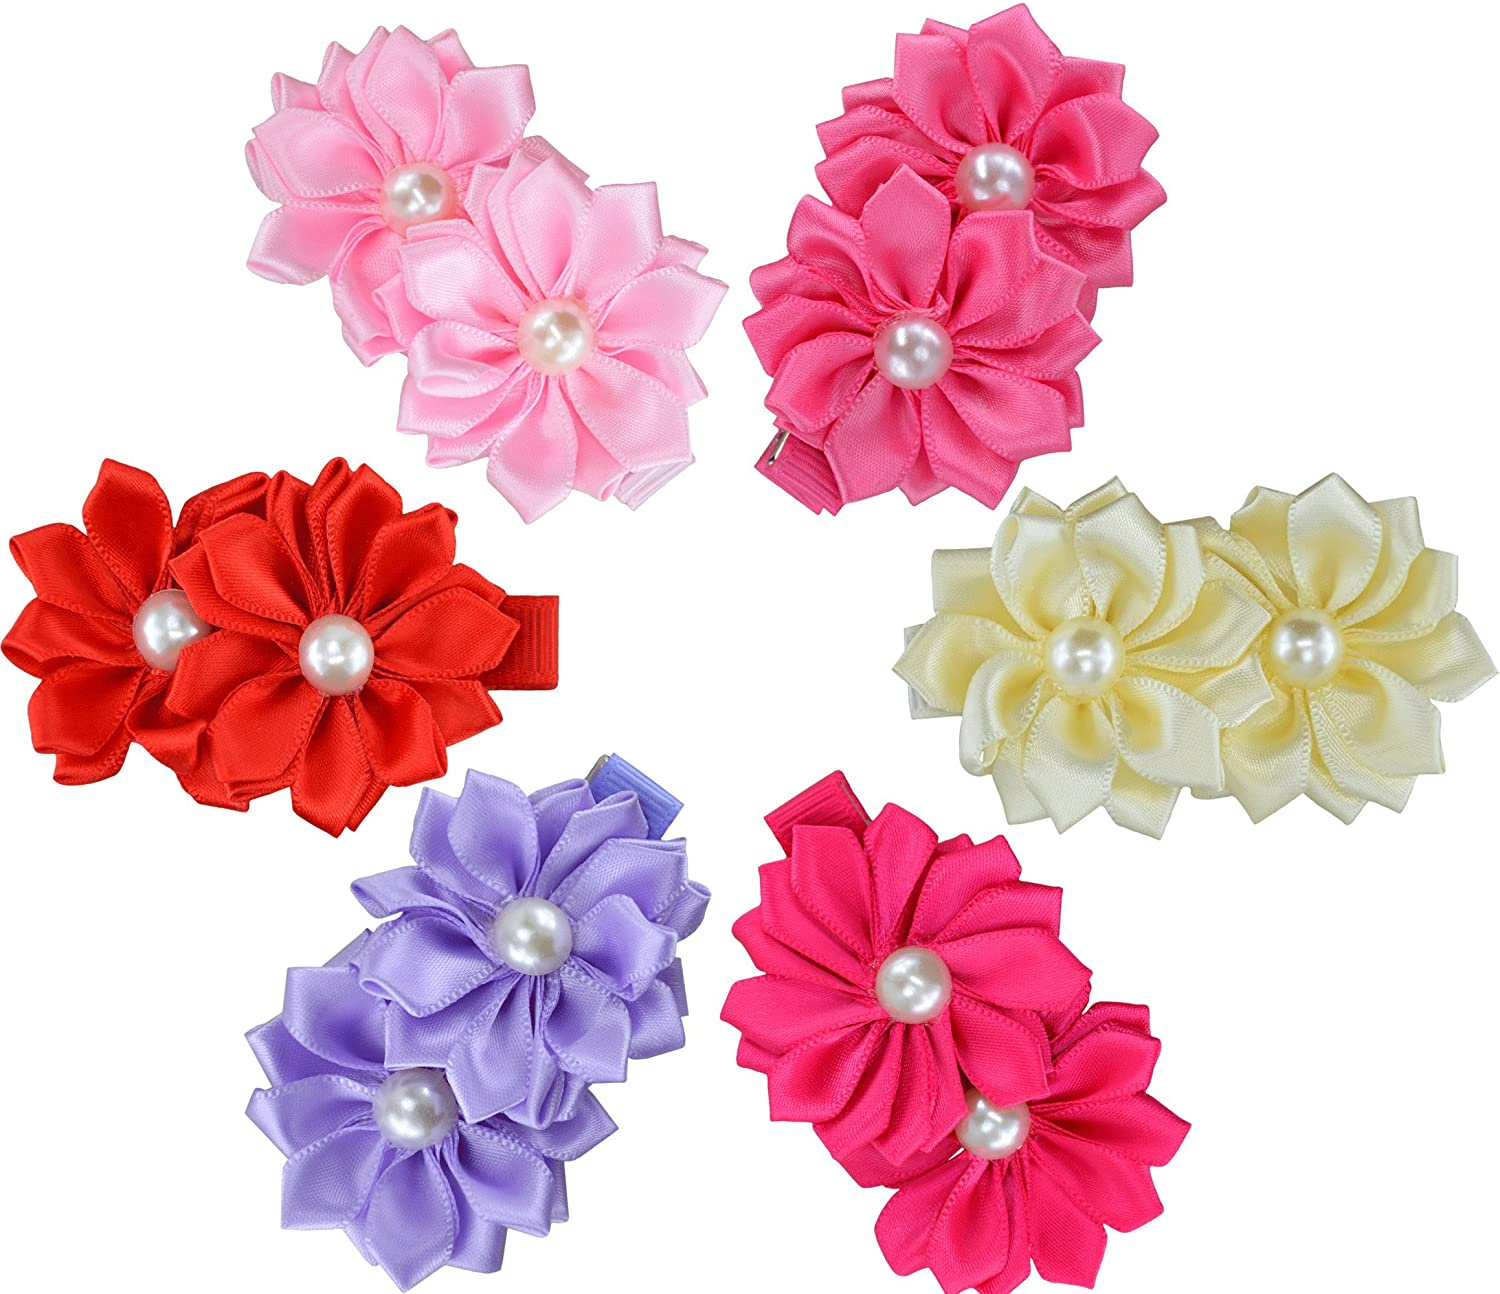 12 Pcs Heymei Baby Girls Solid Colors Chiffon Flowers Hair Bows Elastic Headbands (12 Soft Colors)